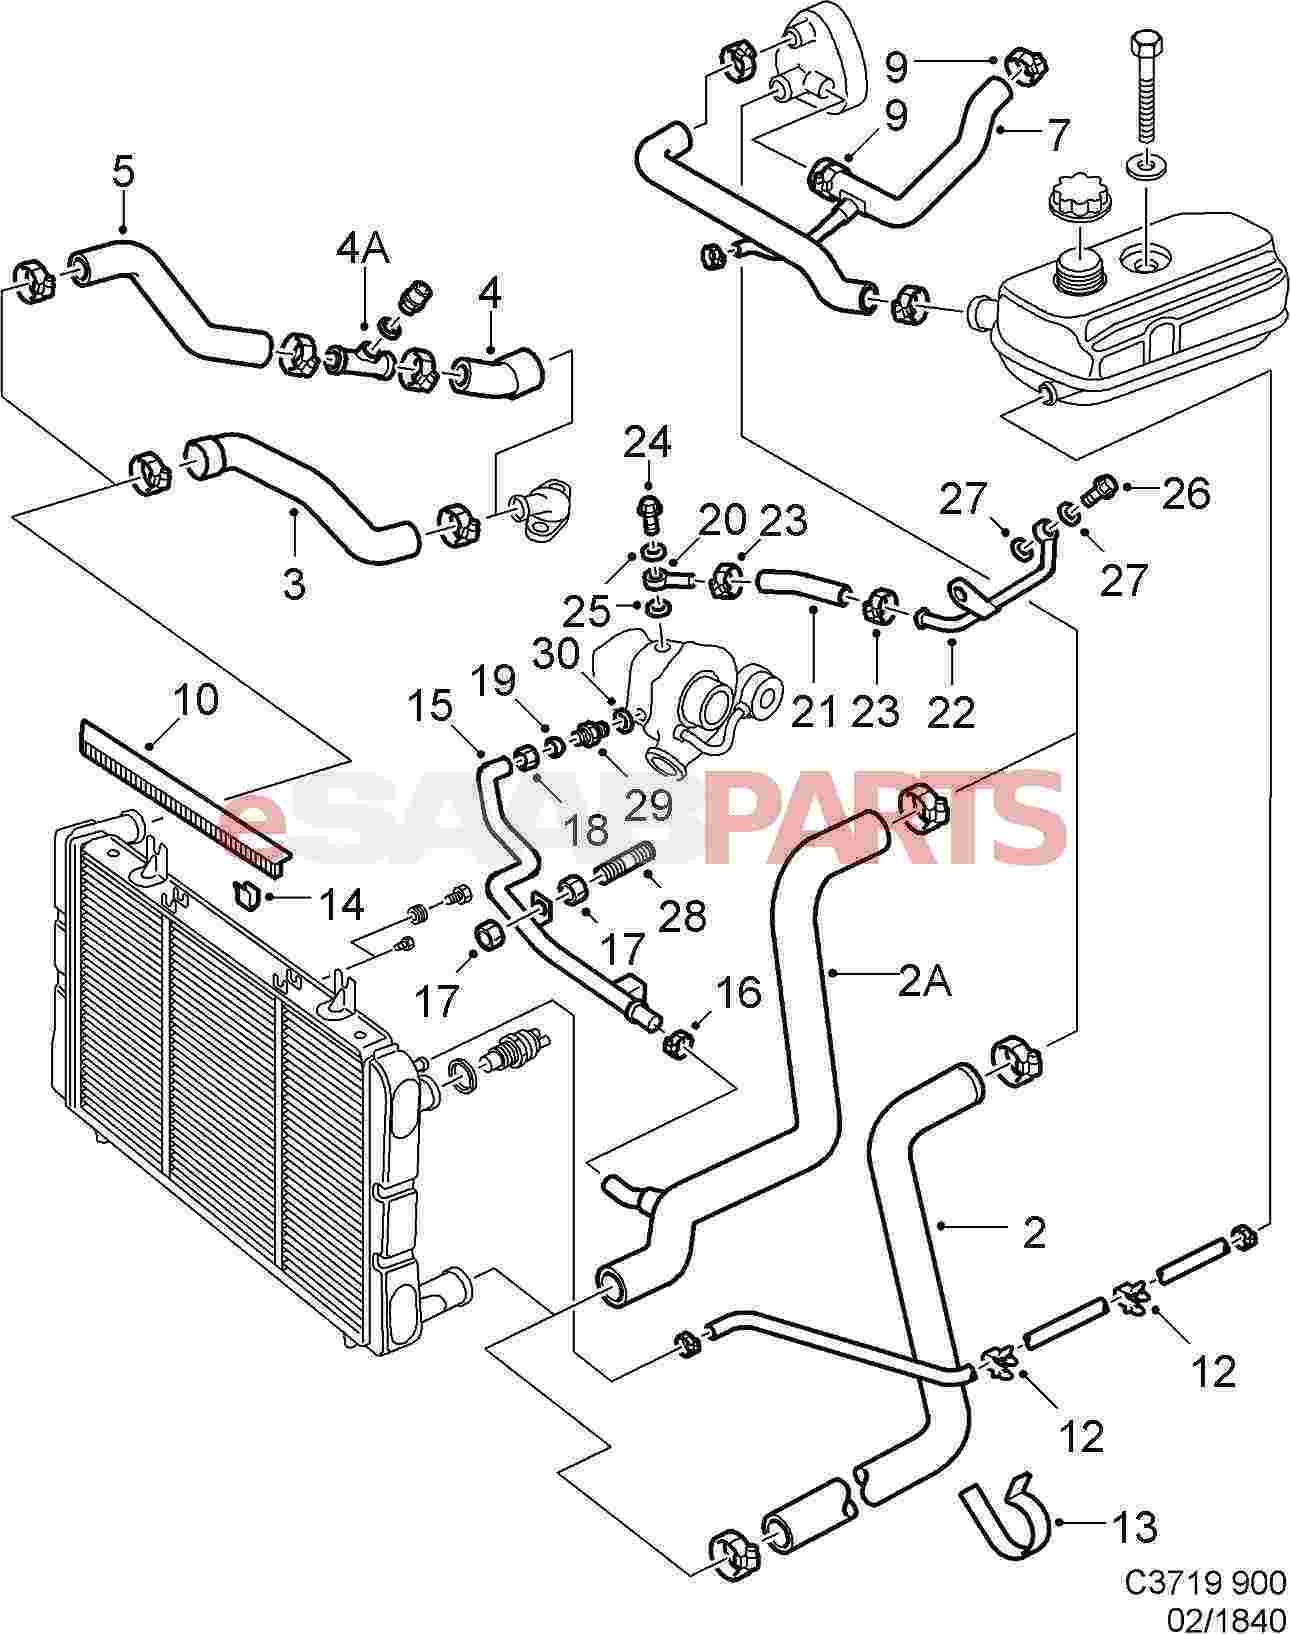 hight resolution of 2000 audi s4 engine diagram wiring diagram imp2000 audi  s4 engine diagram wiring